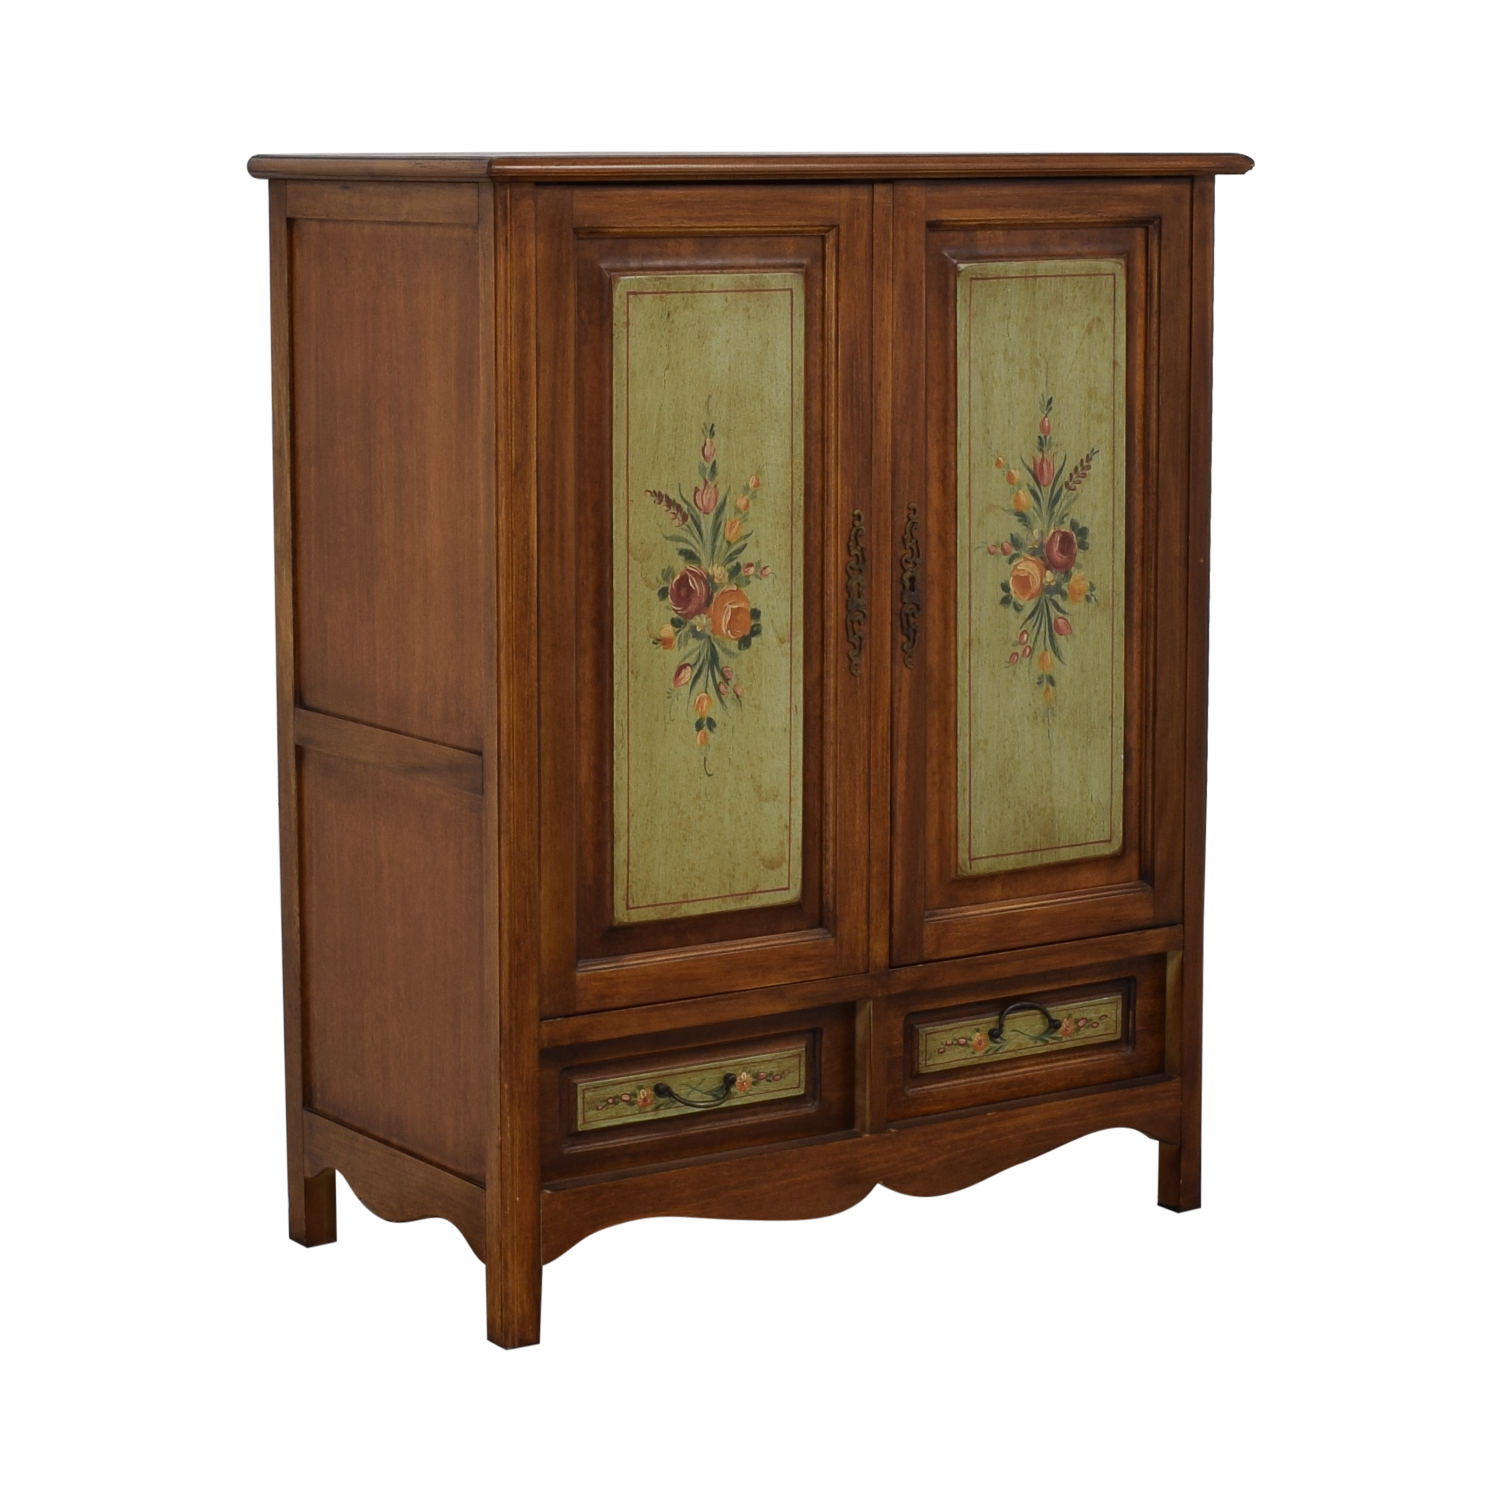 Cupboard Drawers 78 Off Domain Domain Walnut French Antique Floral Painted Media Cabinet With Drawers Storage